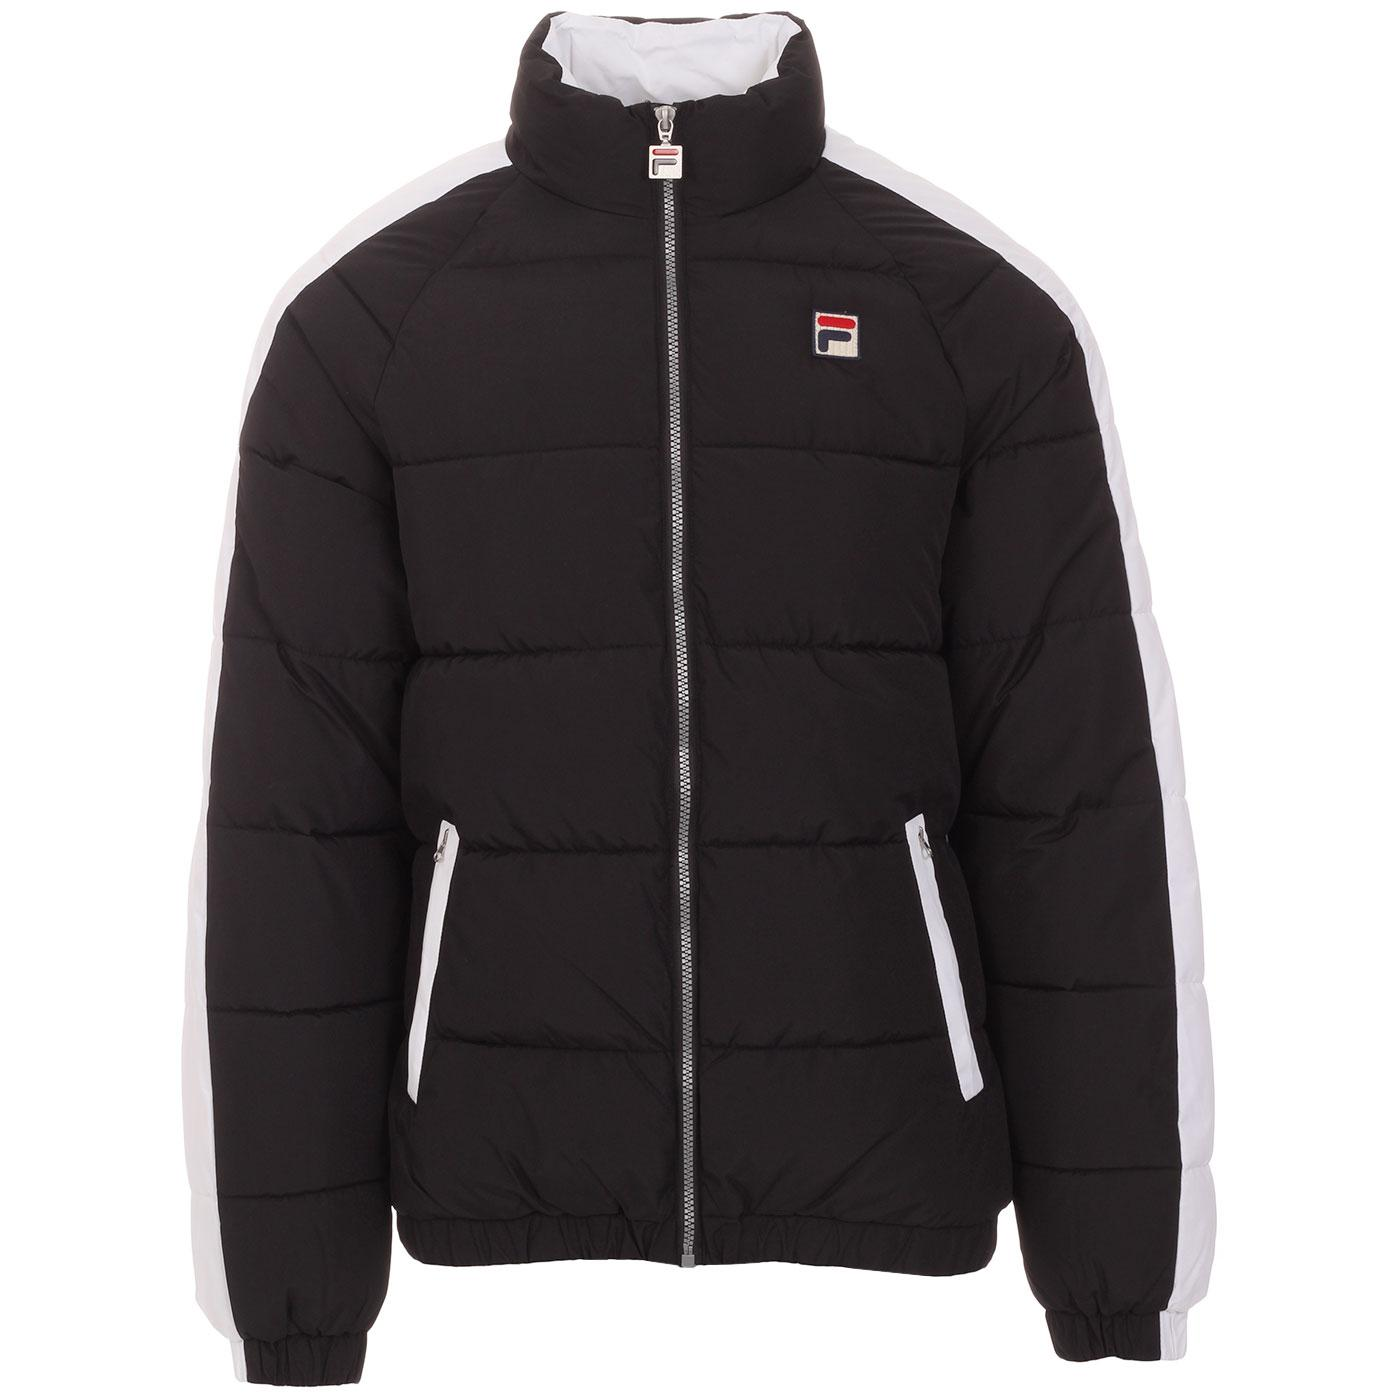 Ledger FILA VINTAGE Retro 1980s Quilted Jacket (B)